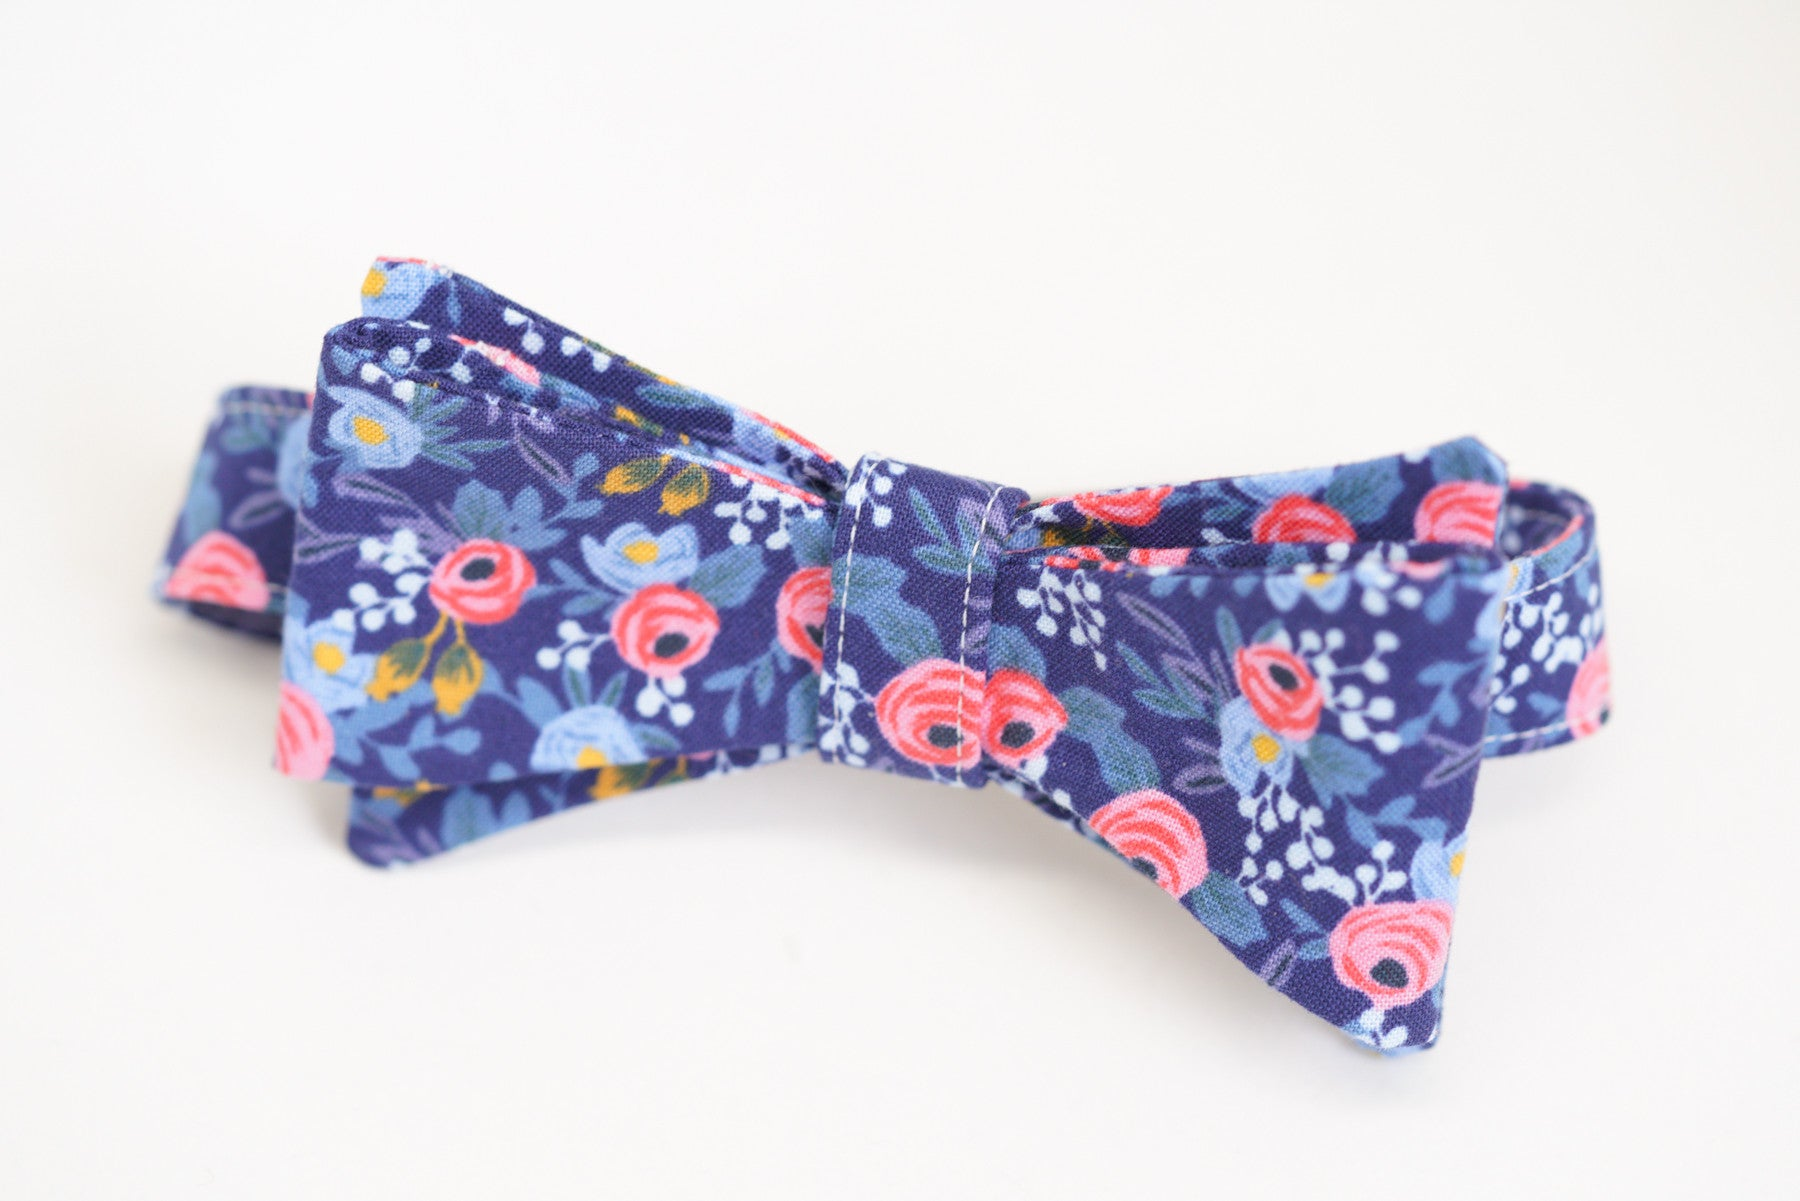 The Max Bow Tie